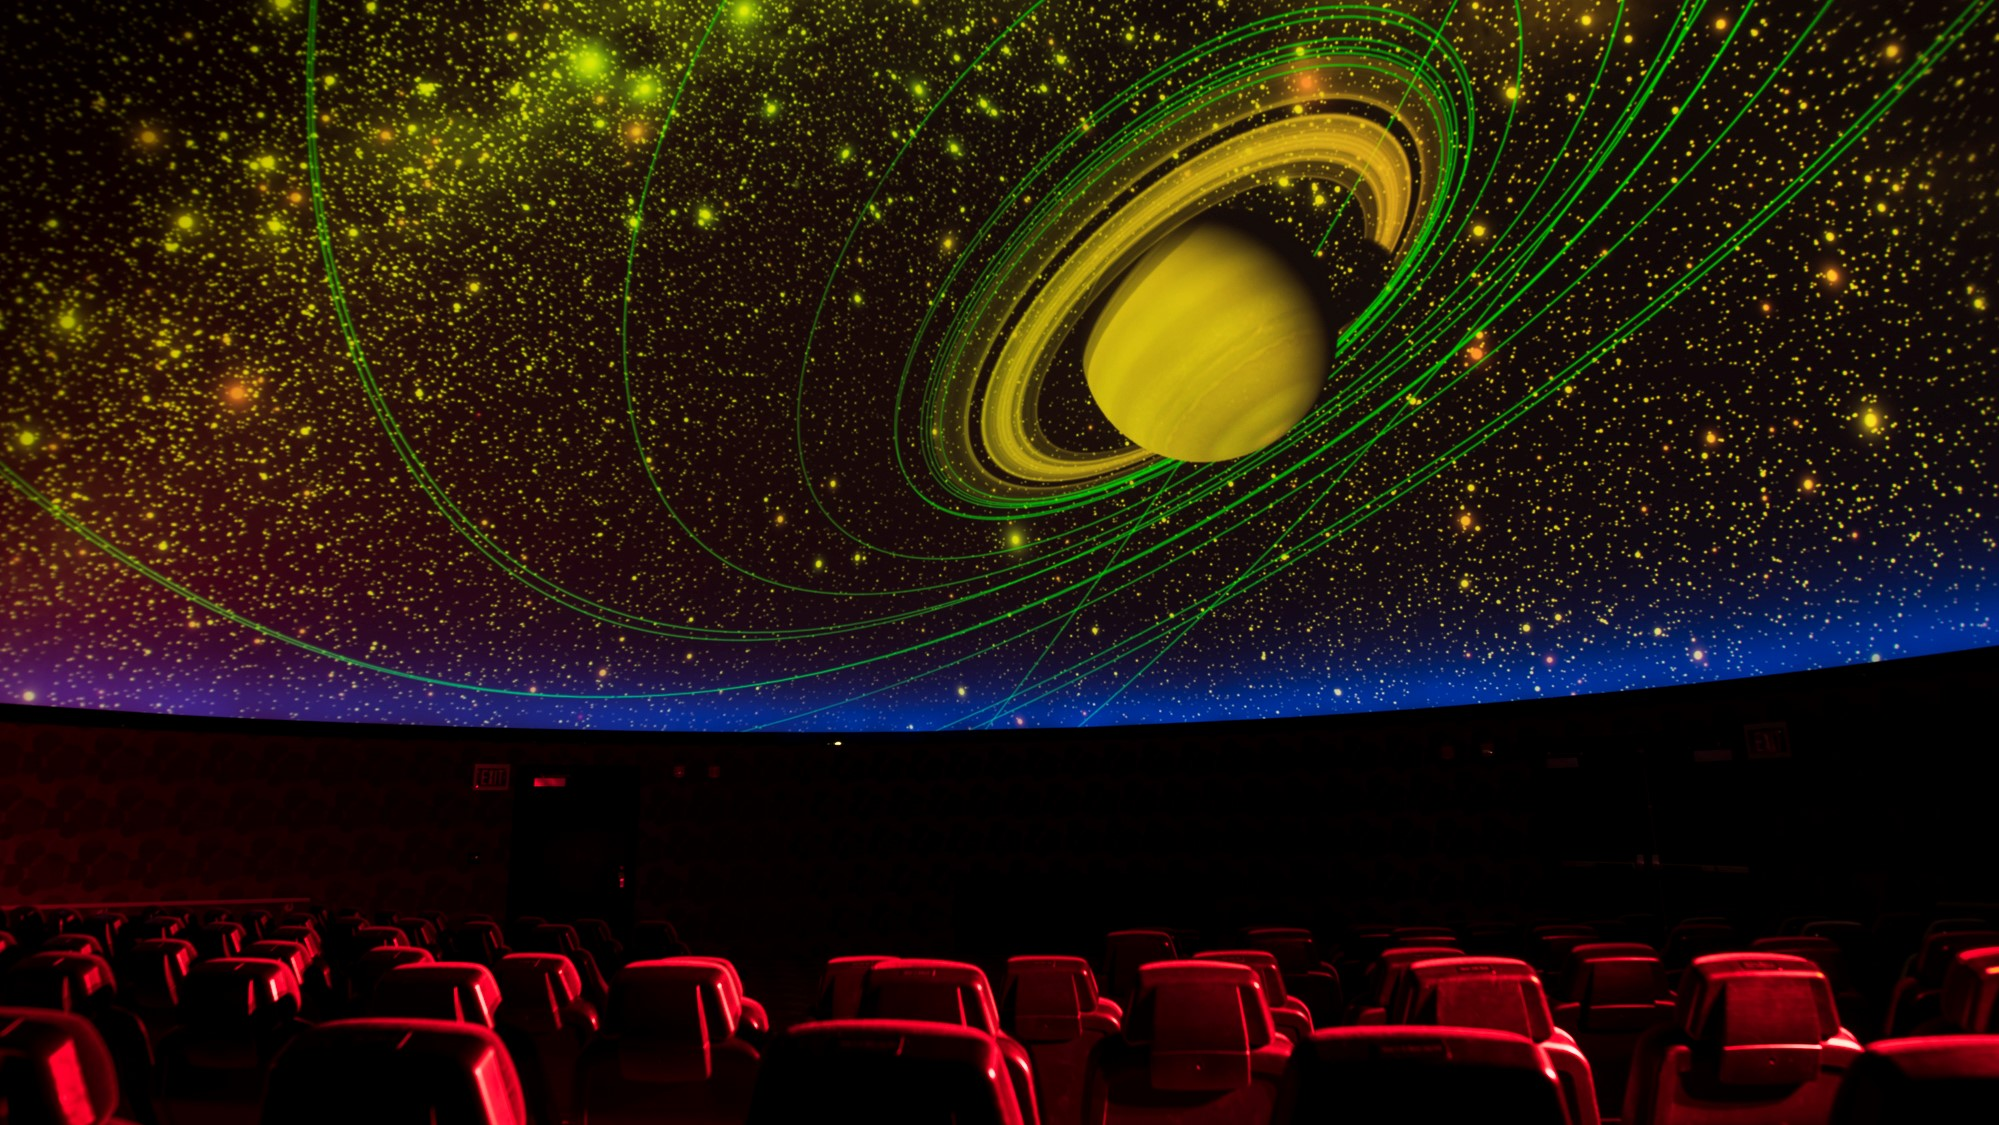 Theater seats with visual of solar system directly over head.